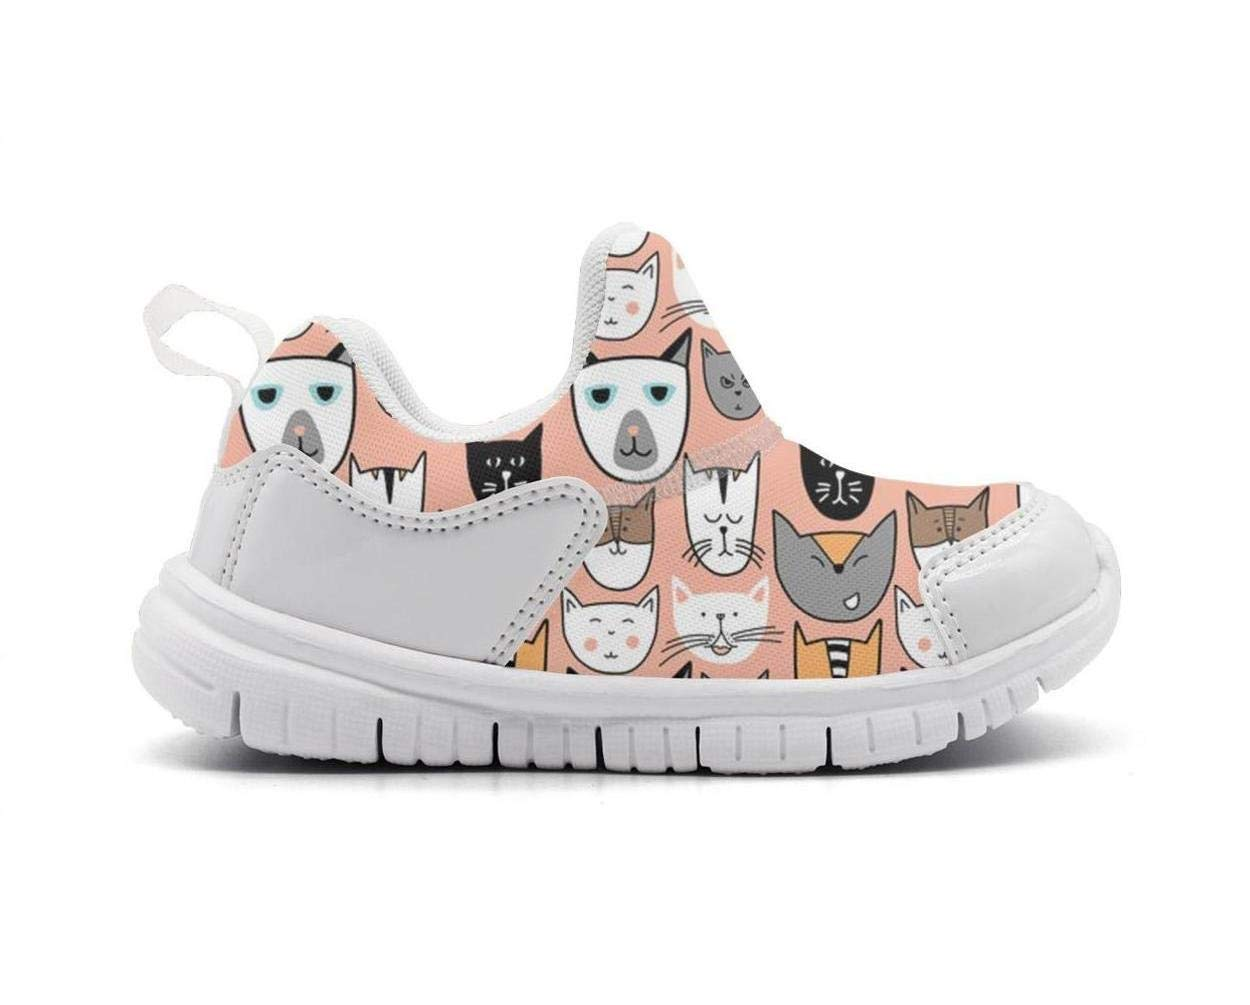 ONEYUAN Children Kawaii Kitty Cats face Kid Casual Lightweight Sport Shoes Sneakers Walking Athletic Shoes